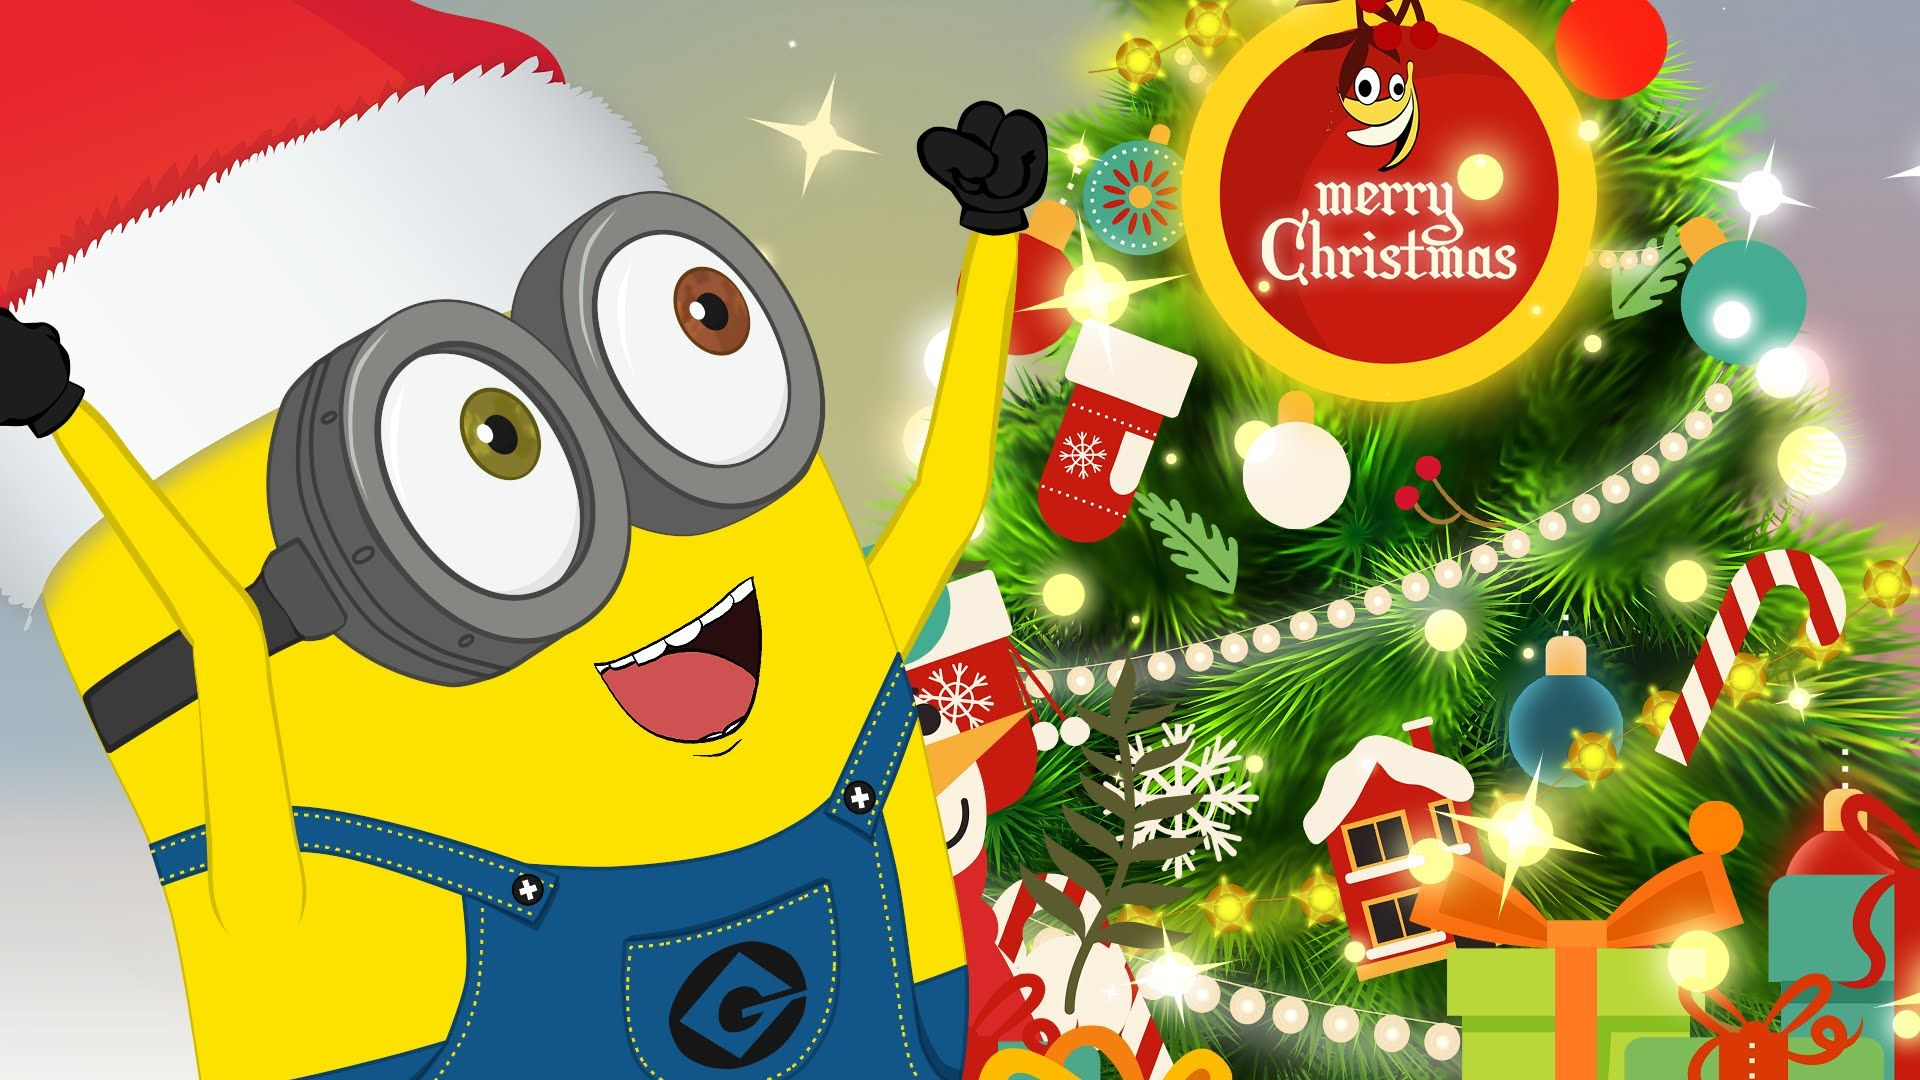 download free minions christmas wallpapers for your mobile phone hd wallpapers pinterest christmas merry christmas and merry - Minion Christmas Wallpaper